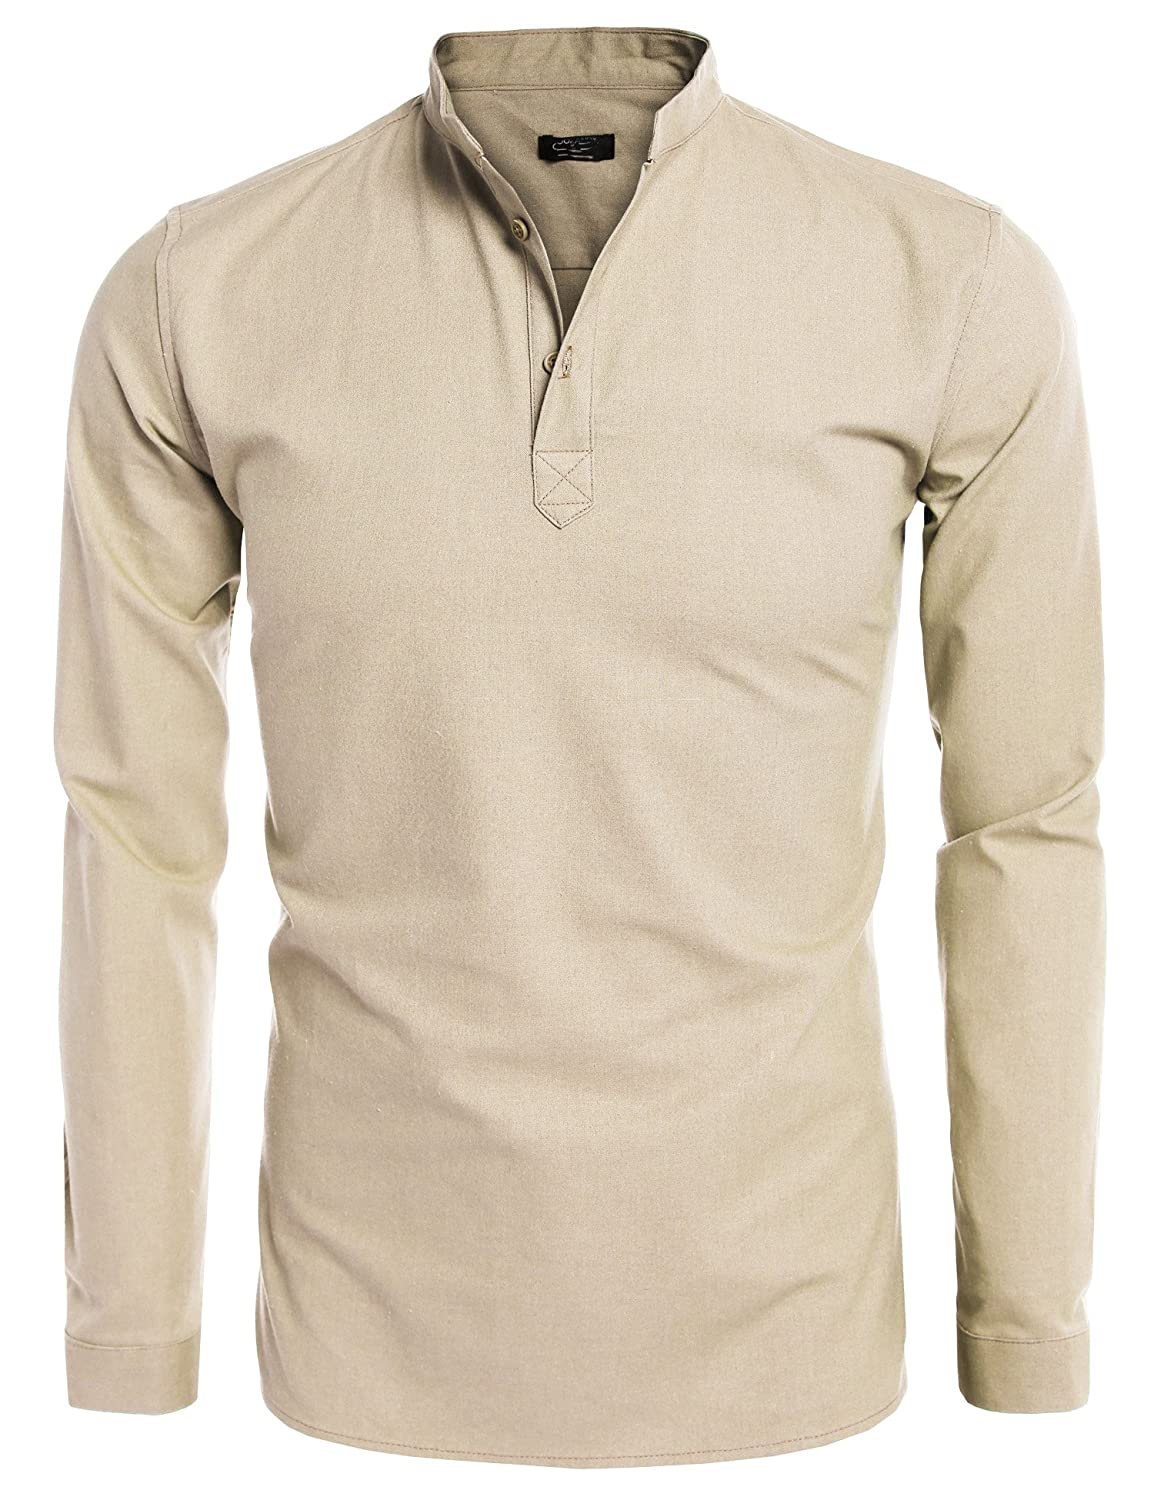 3f570a19db6a12 Mens Grandad Shirts Linen – EDGE Engineering and Consulting Limited